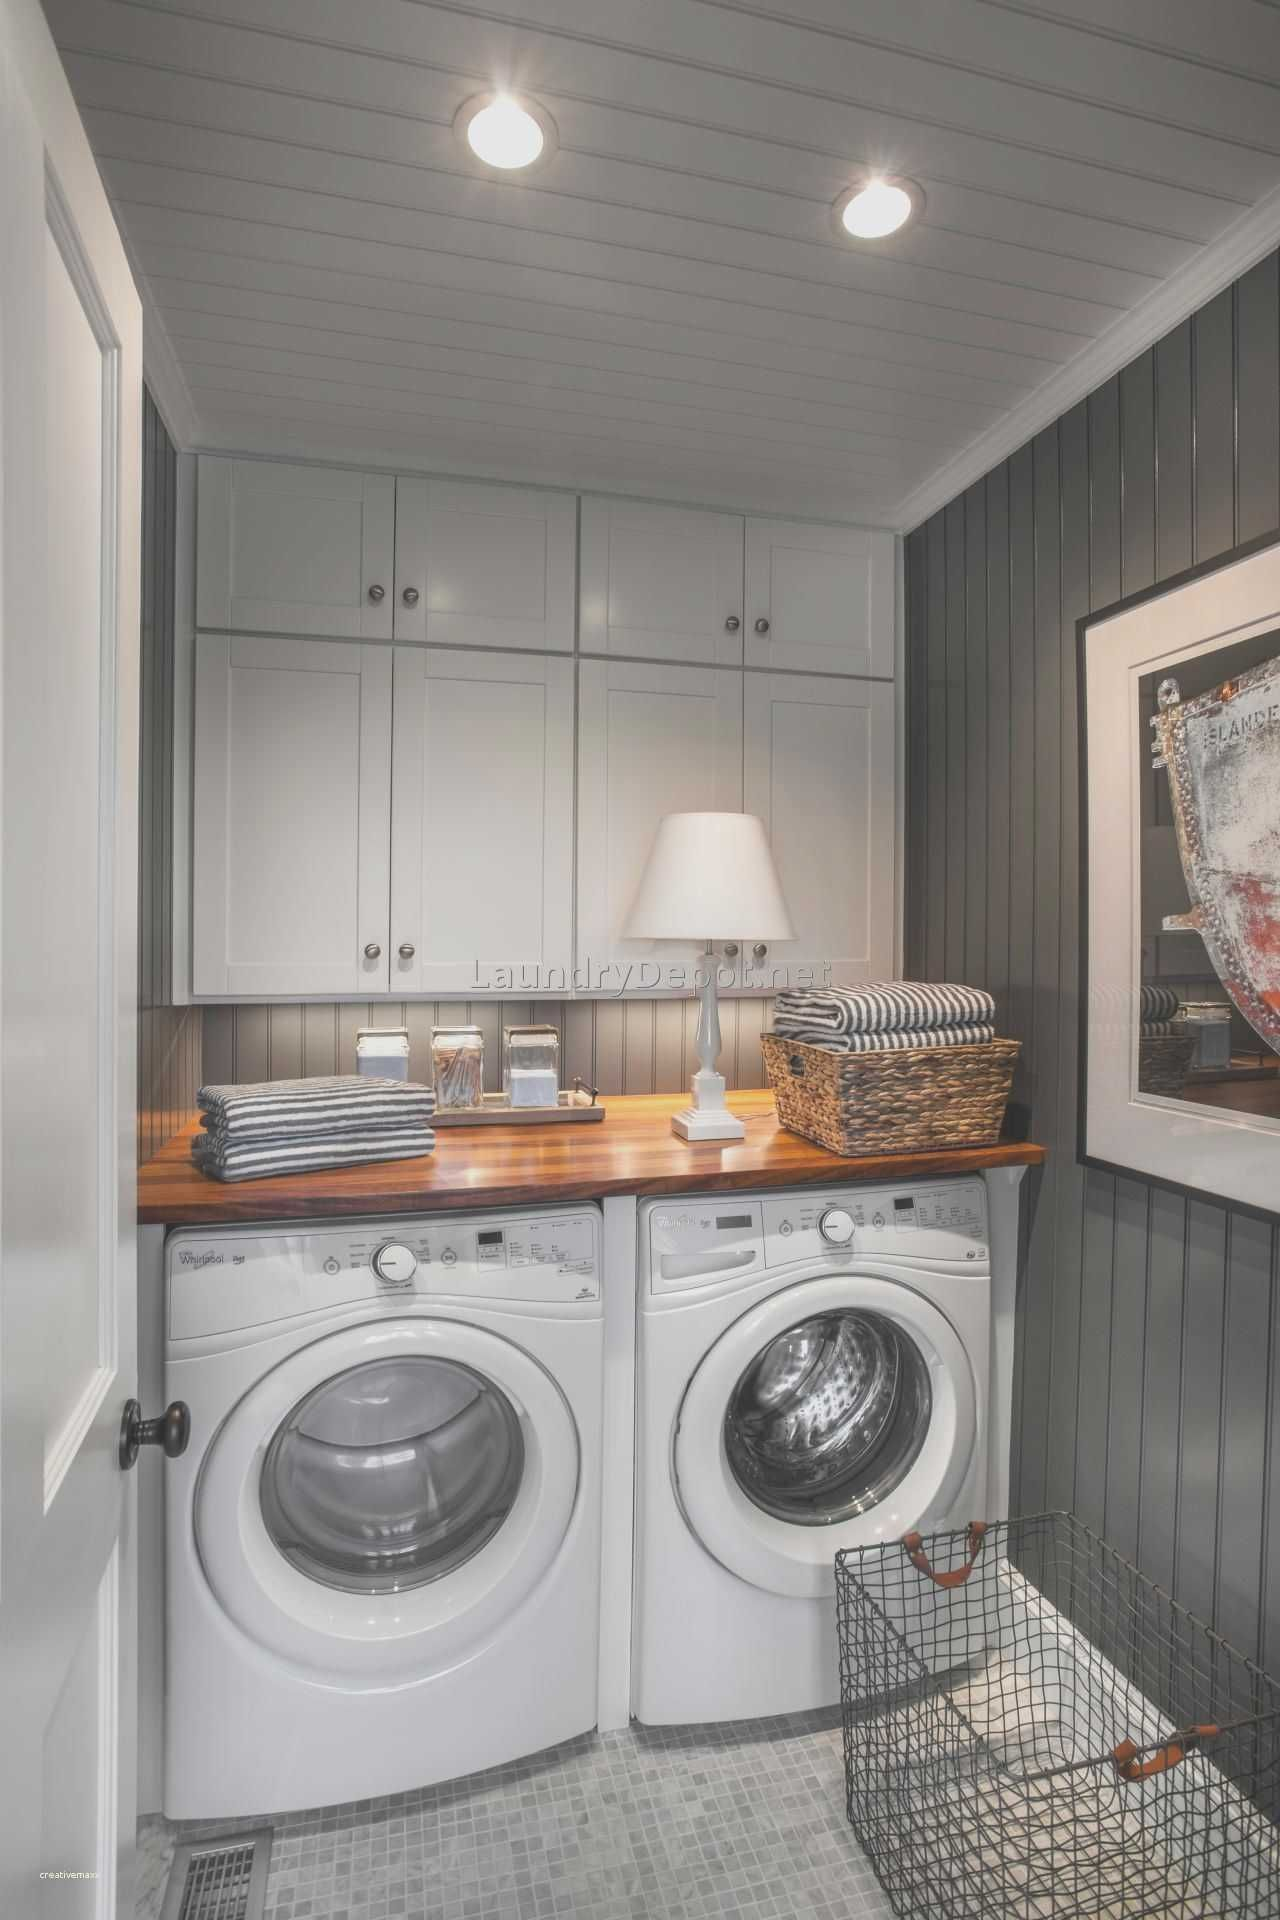 Laundry Room Ideas Small Stackable Closet Luxury Laundry Room Ideas Small Stackable Closet Laundry